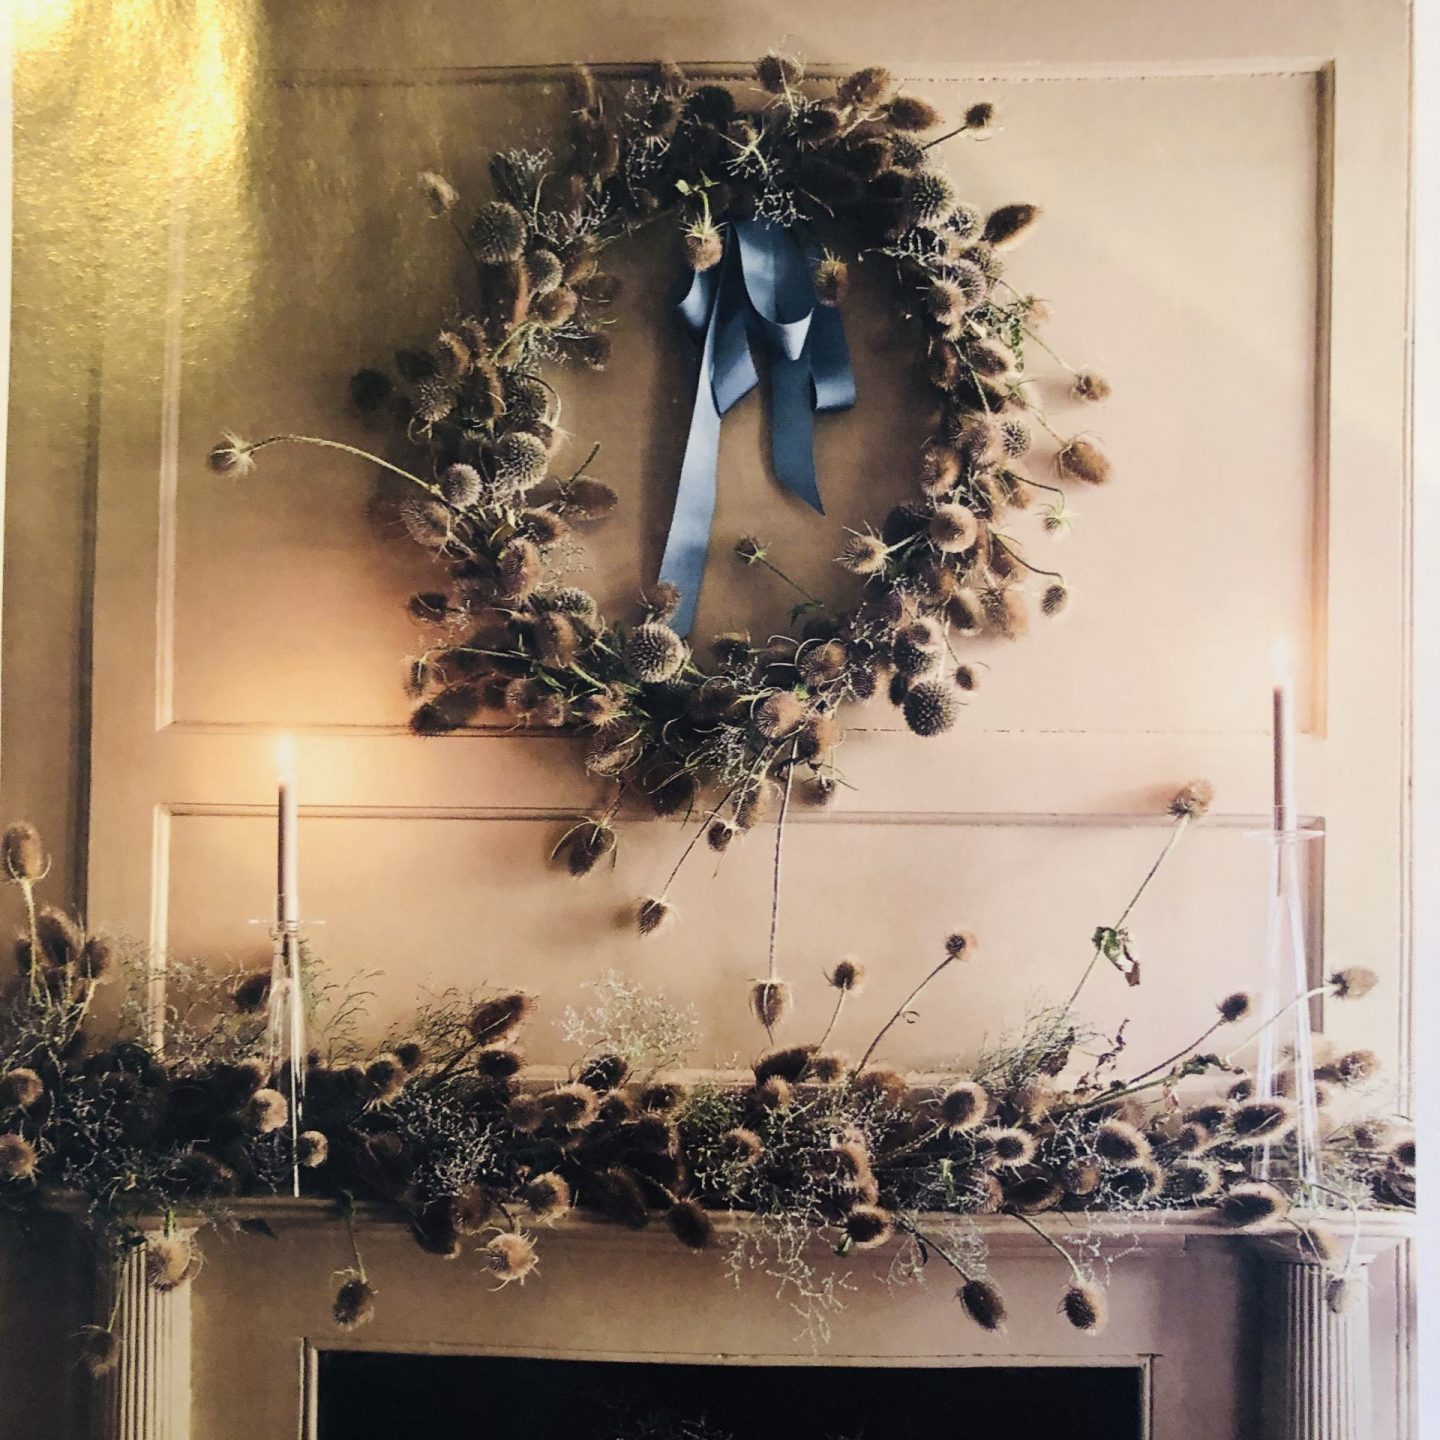 From homes and gardens mag - a teasel wreath